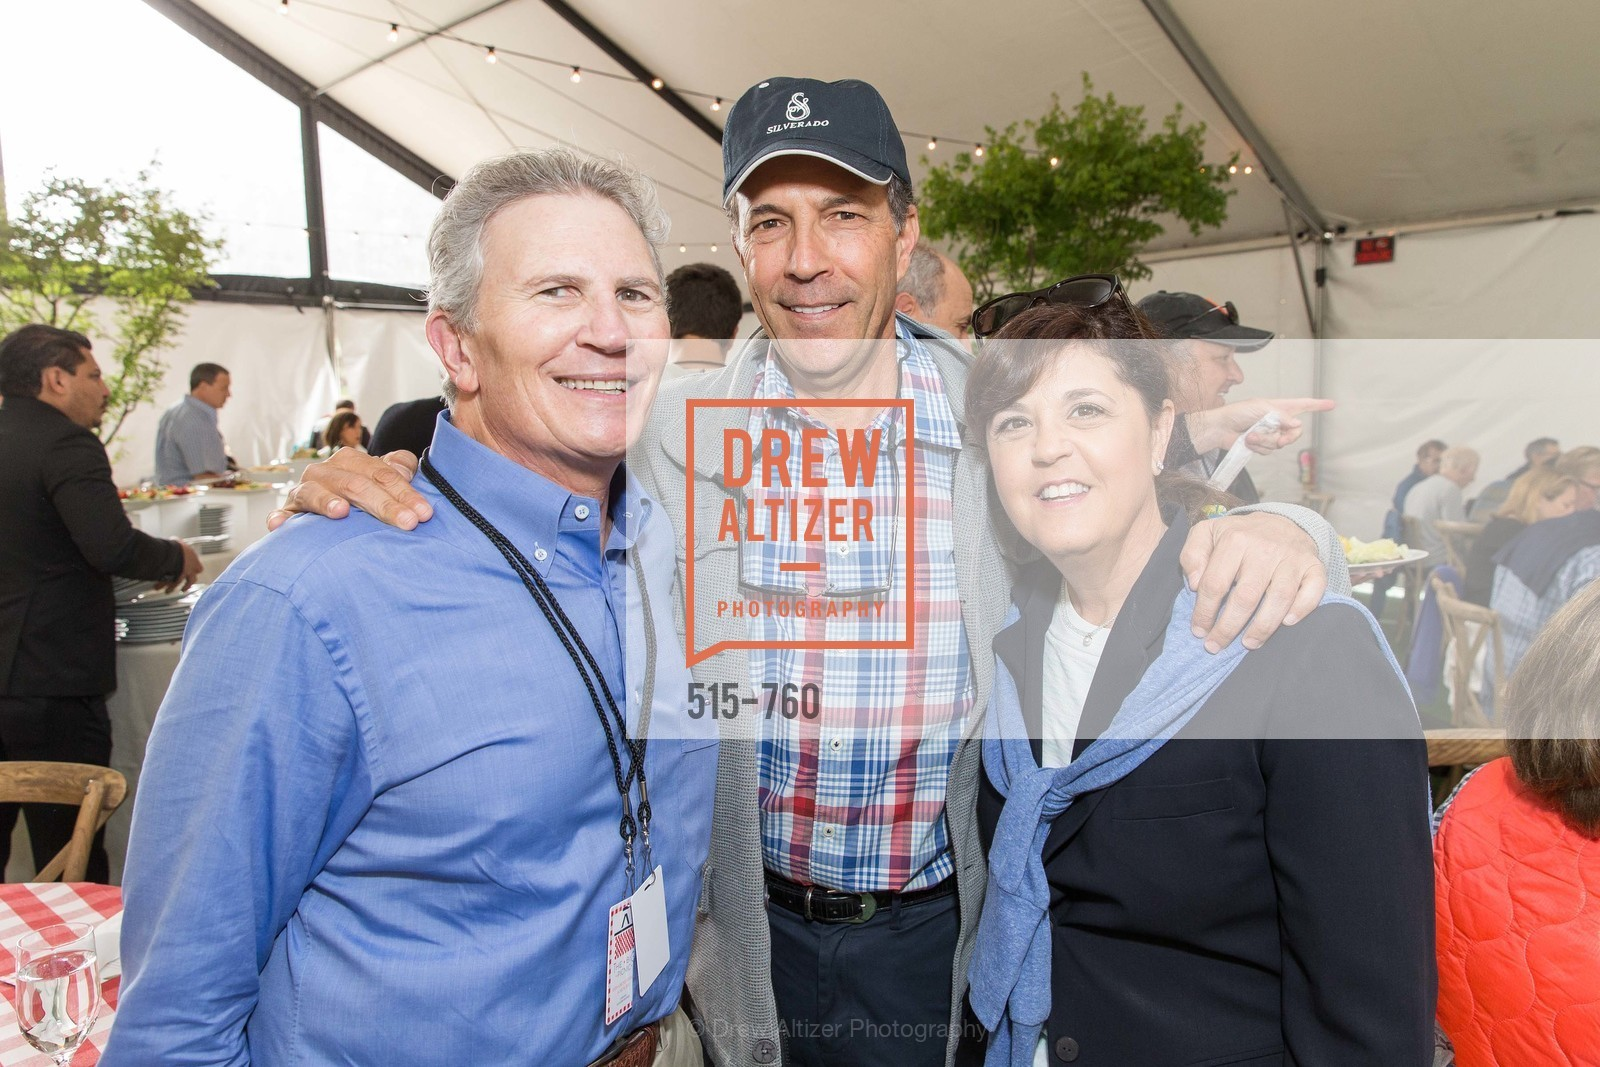 Doug Goldman, John Roos, Susie Roos, The Big Picnic! A Benefit & Concert for STERN GROVE FESTIVAL, US, June 14th, 2015,Drew Altizer, Drew Altizer Photography, full-service agency, private events, San Francisco photographer, photographer california